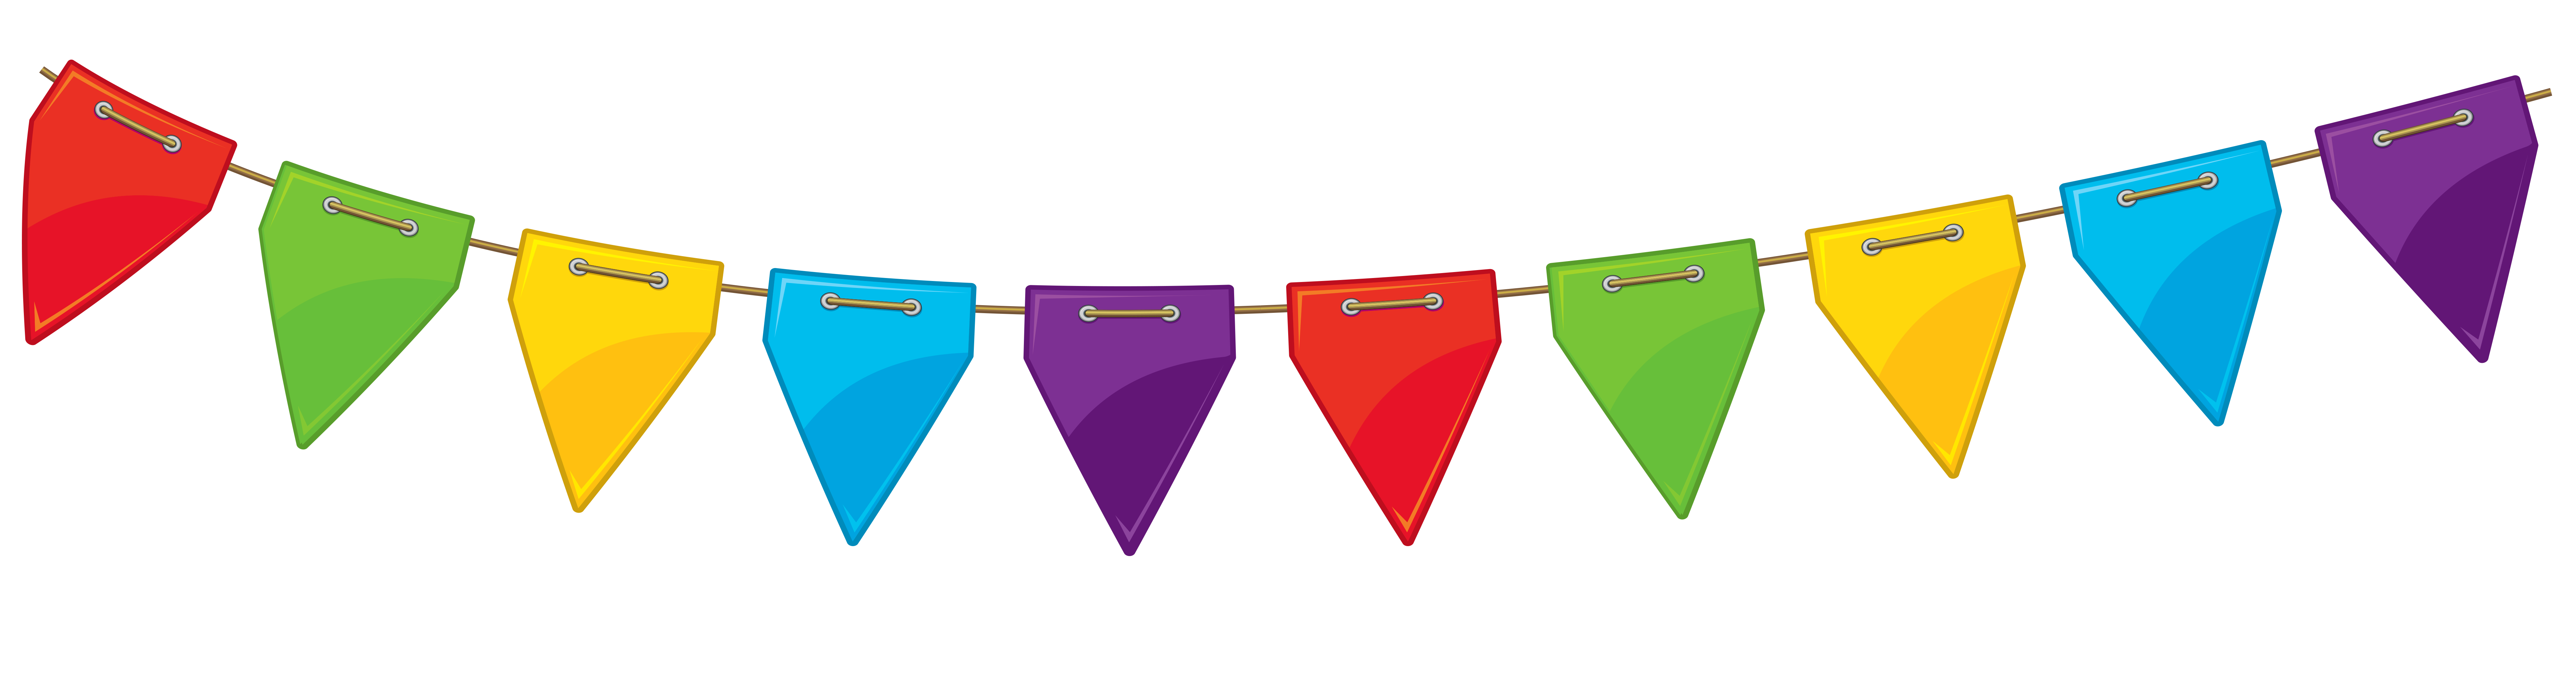 Triangle clipart streamer Clipart Gallery Transparent PNG High